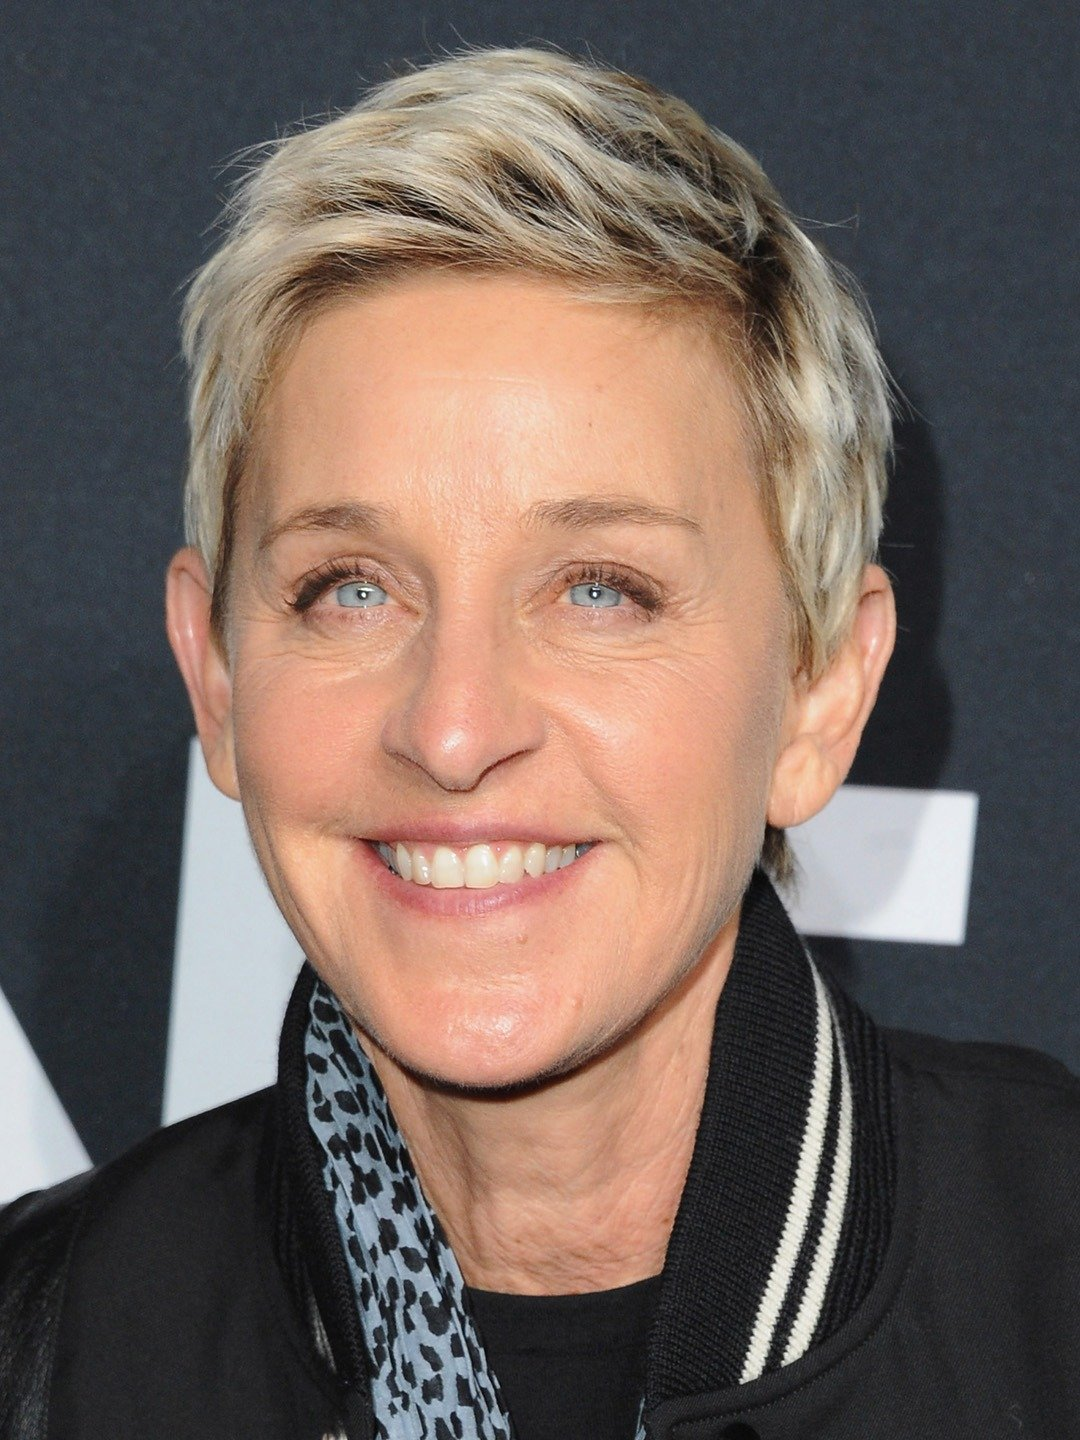 How tall is Ellen DeGeneres?